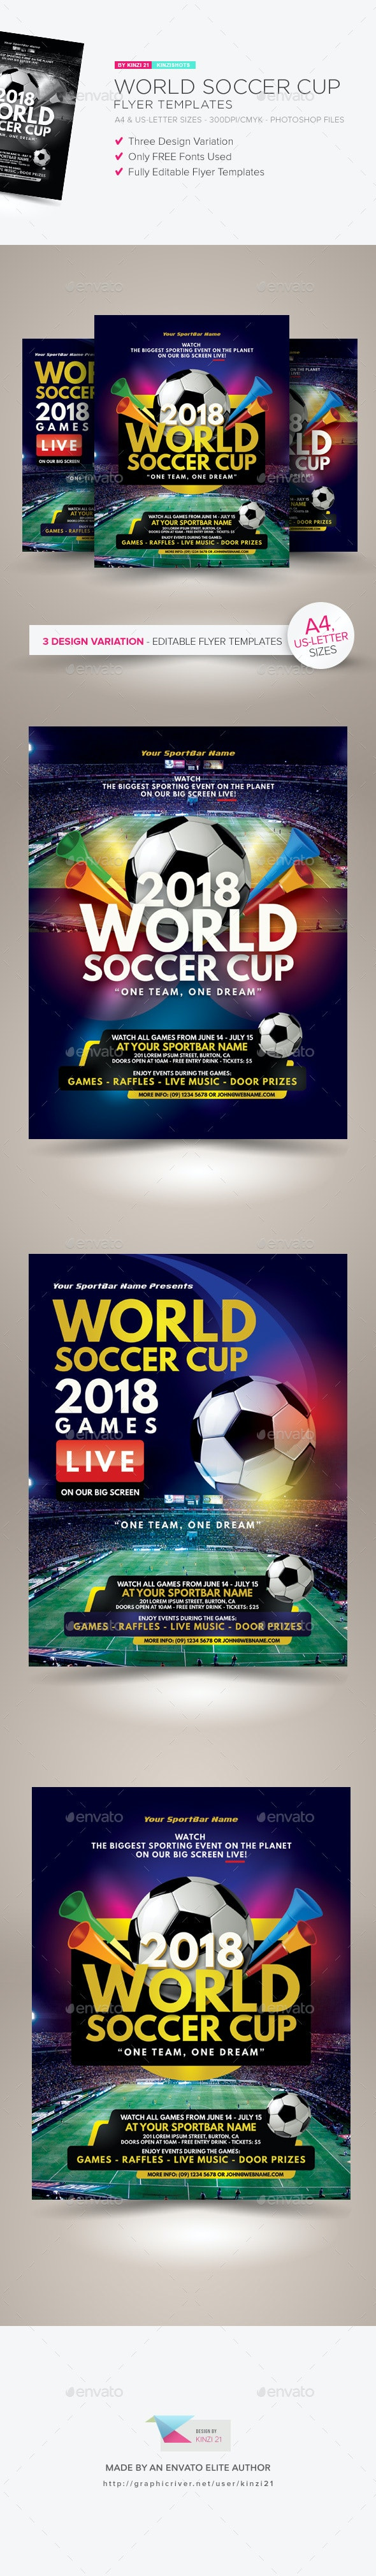 World Soccer Cup Flyer Templates - Sports Events